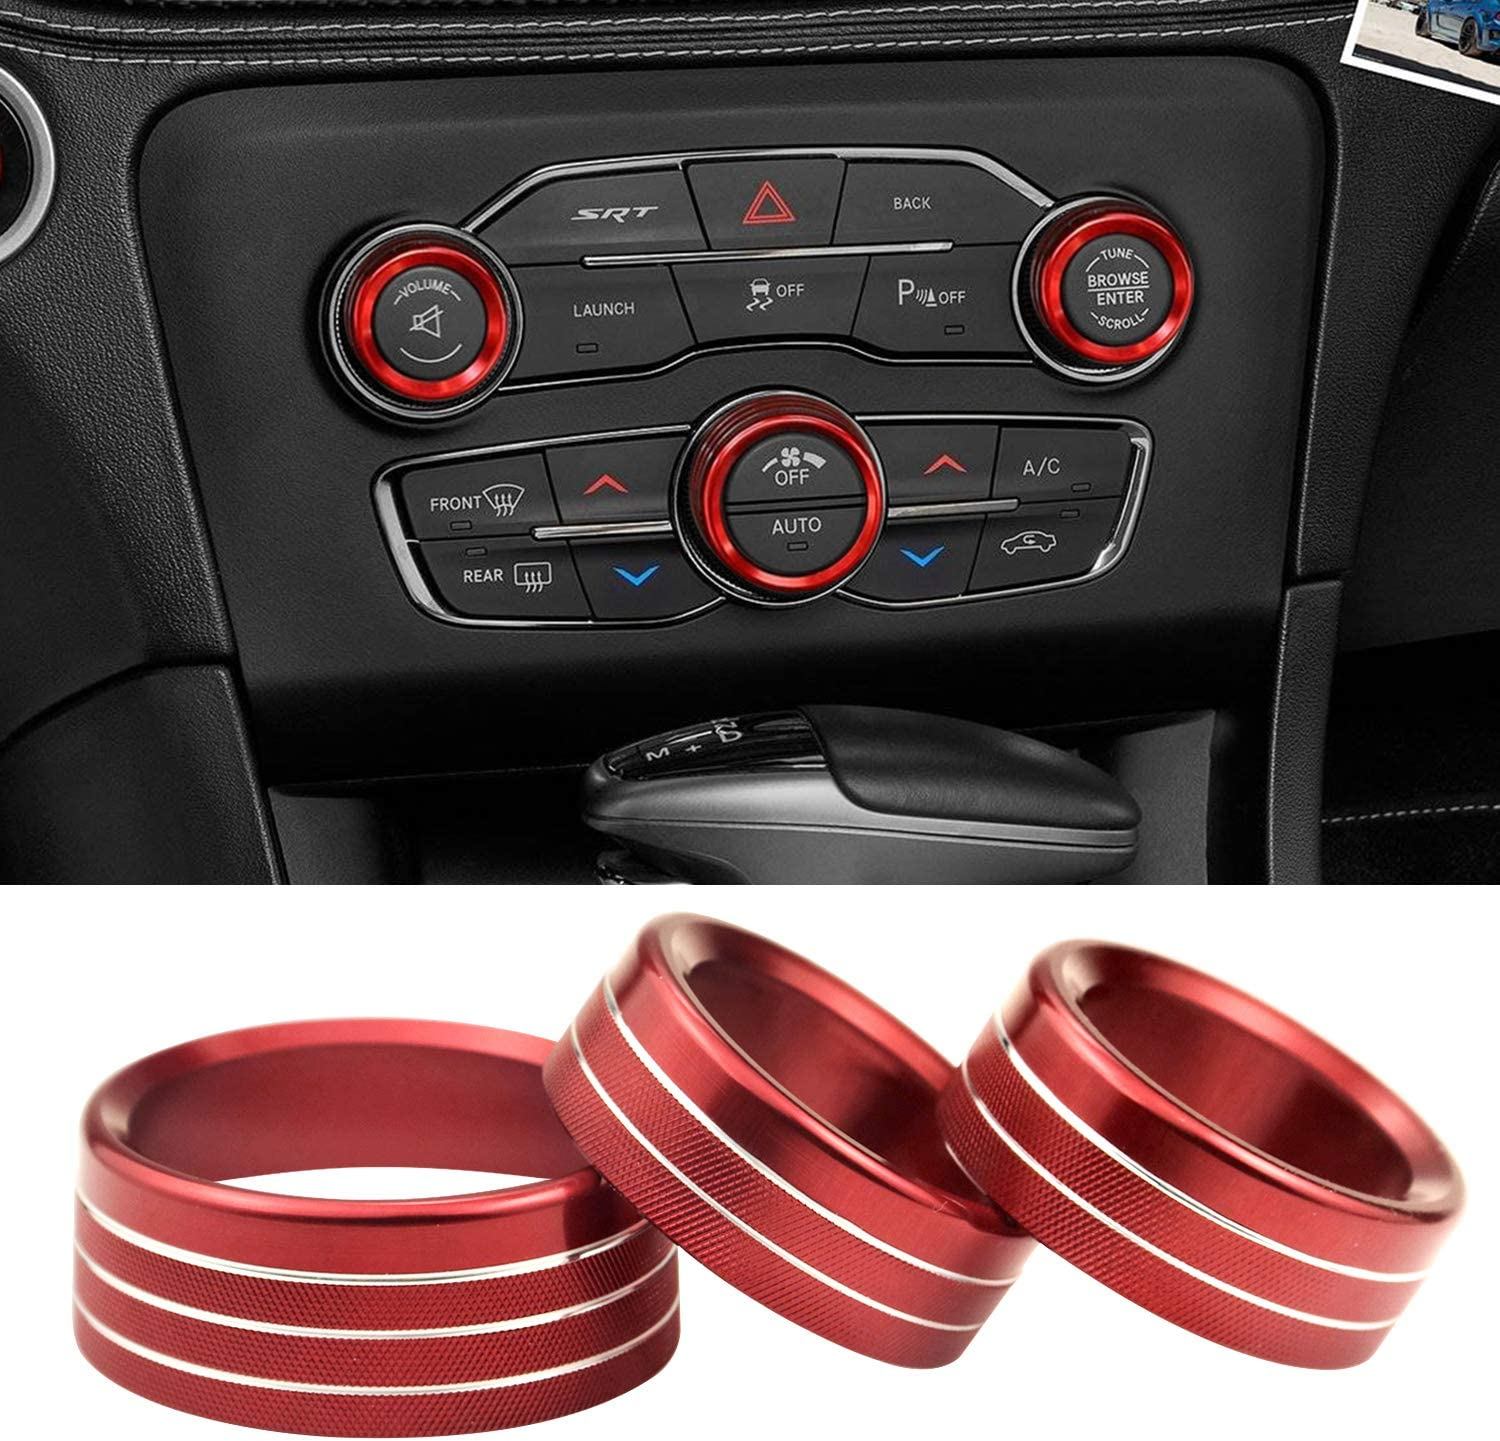 Air Conditioning Switch CD Button Knob Steering Wheel Shift Paddle Decal Trim Cover Rings for 2015-2020 Dodge Charger Challenger Durango RT Scat Pack